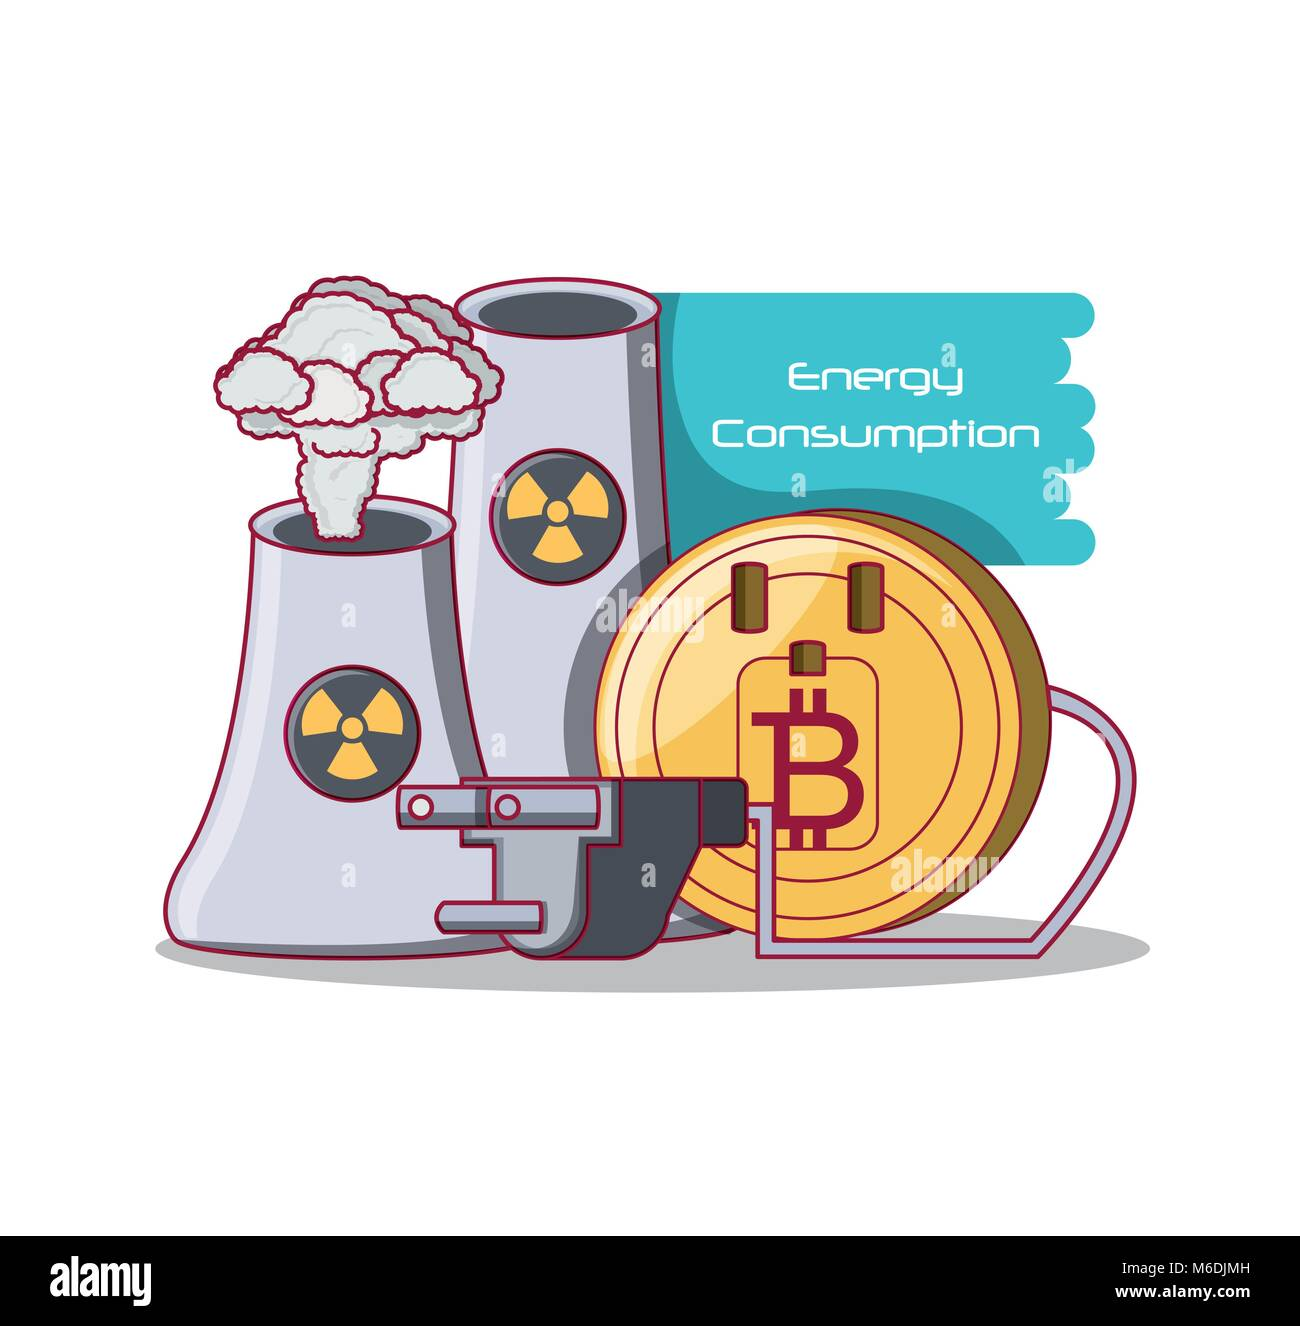 Bitcoin Energy Consumption design with over white background, colorful design vector illustration - Stock Image